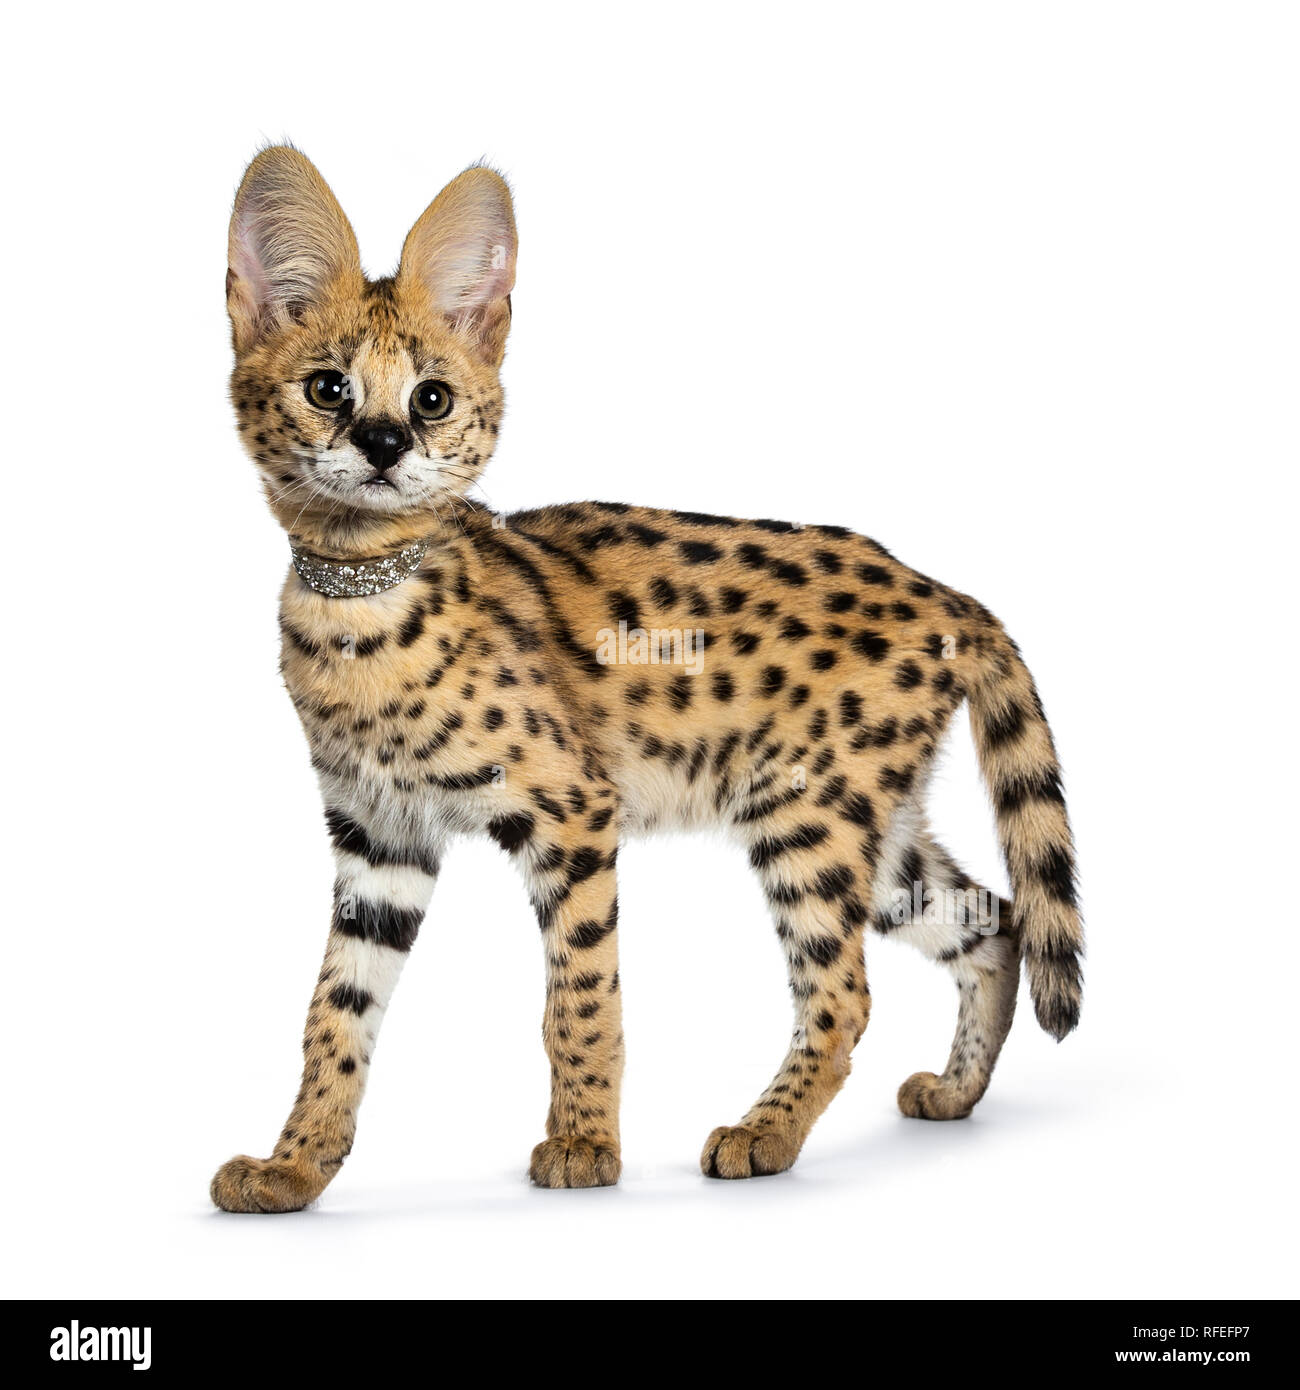 Cute 4 months young Serval cat kitten standing, walking side ways, wearing  shiny collar. Looking beside lens with sweet curious eyes. Tail hanging dow  Stock Photo - Alamy